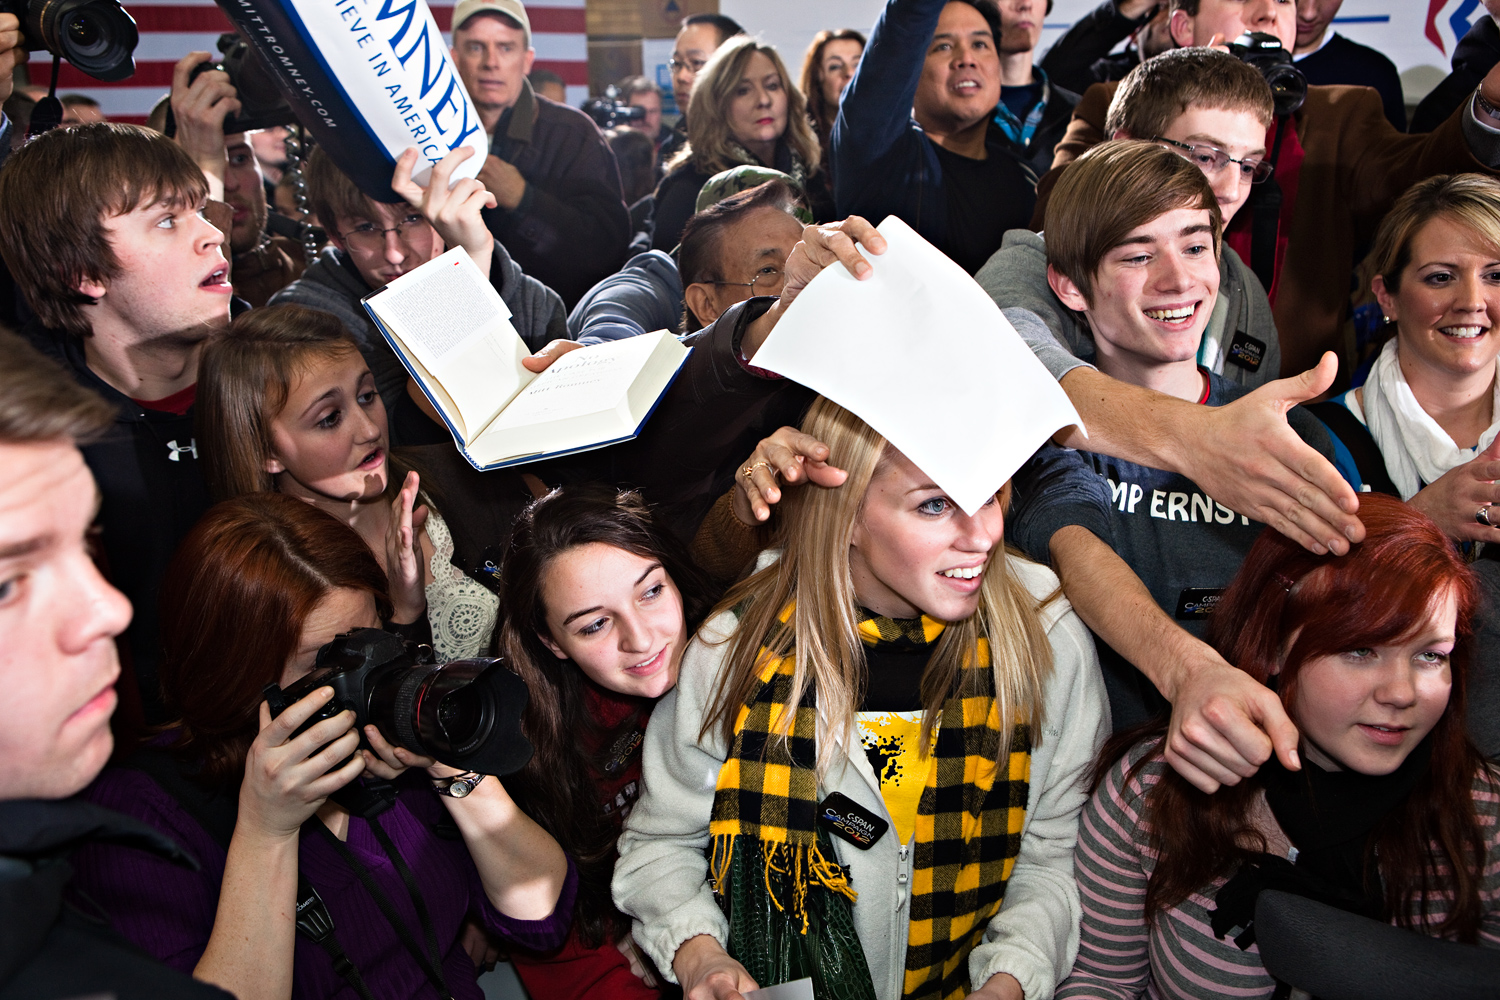 Young Romney supporters swarm to meet him for autographs at a campaign stop in Clive, Iowa on January 2, 2012.